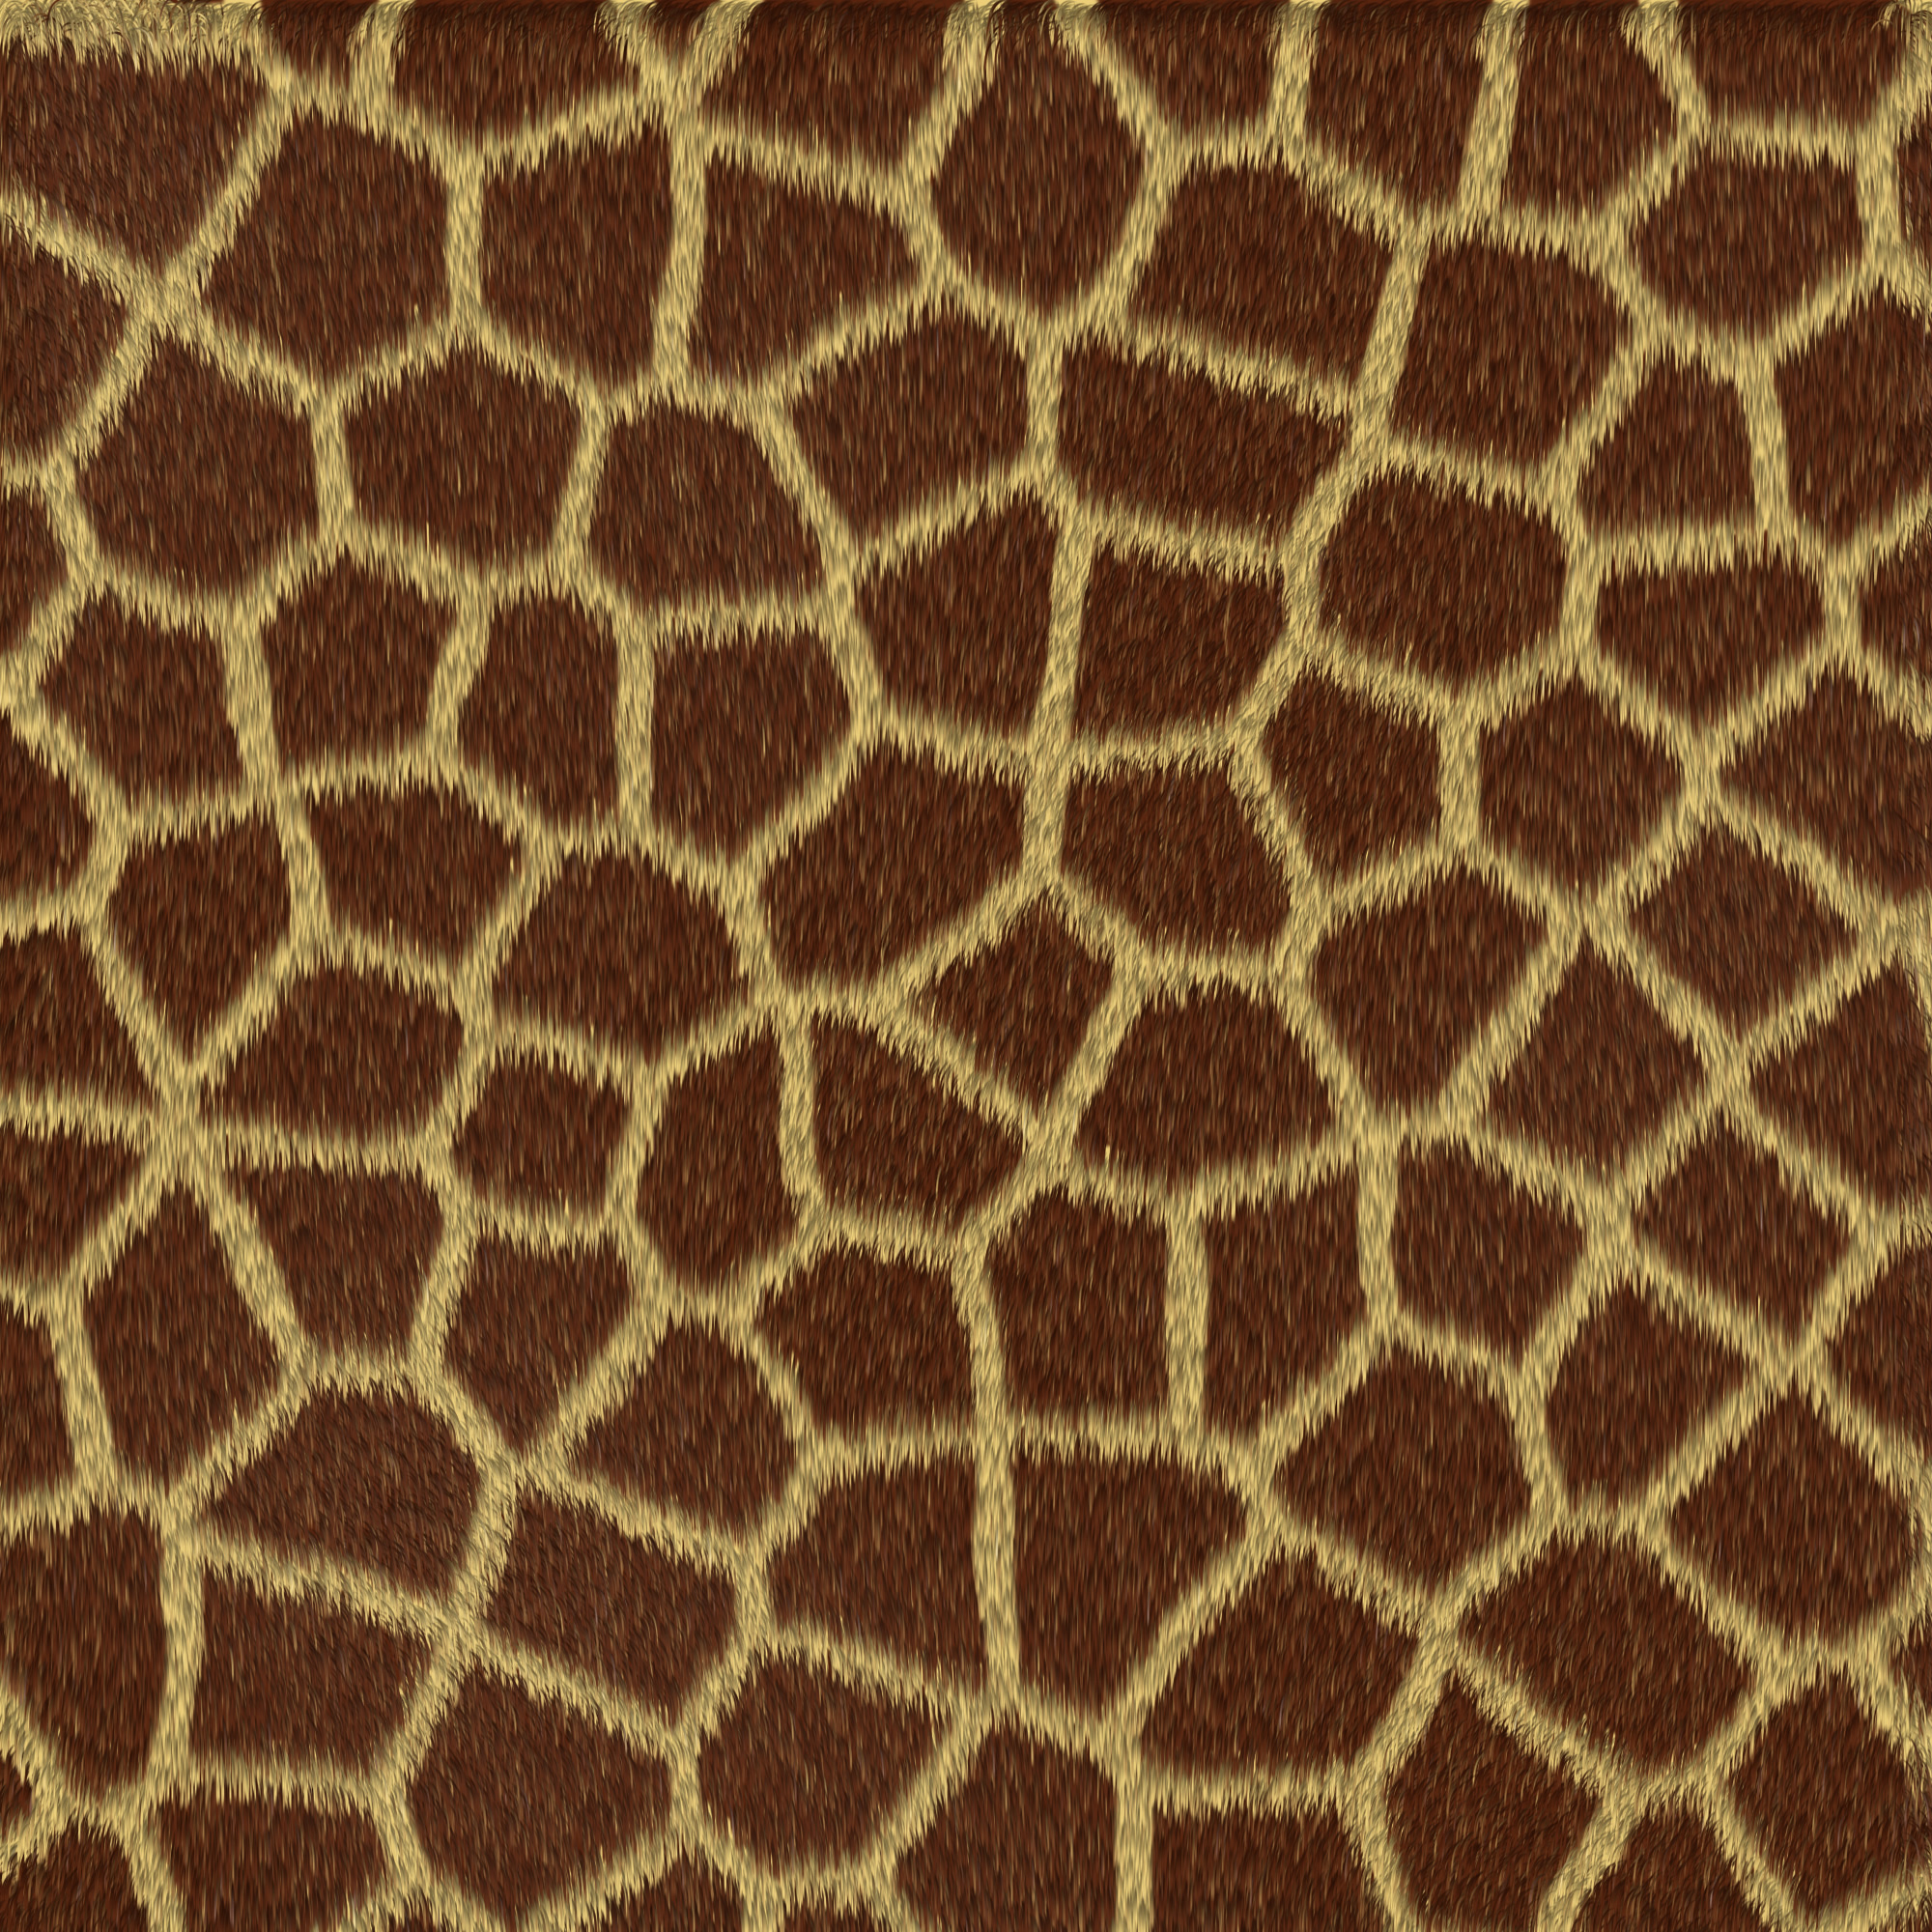 giraffe, skin giraffe, animal texture, background, skin animal texture, background